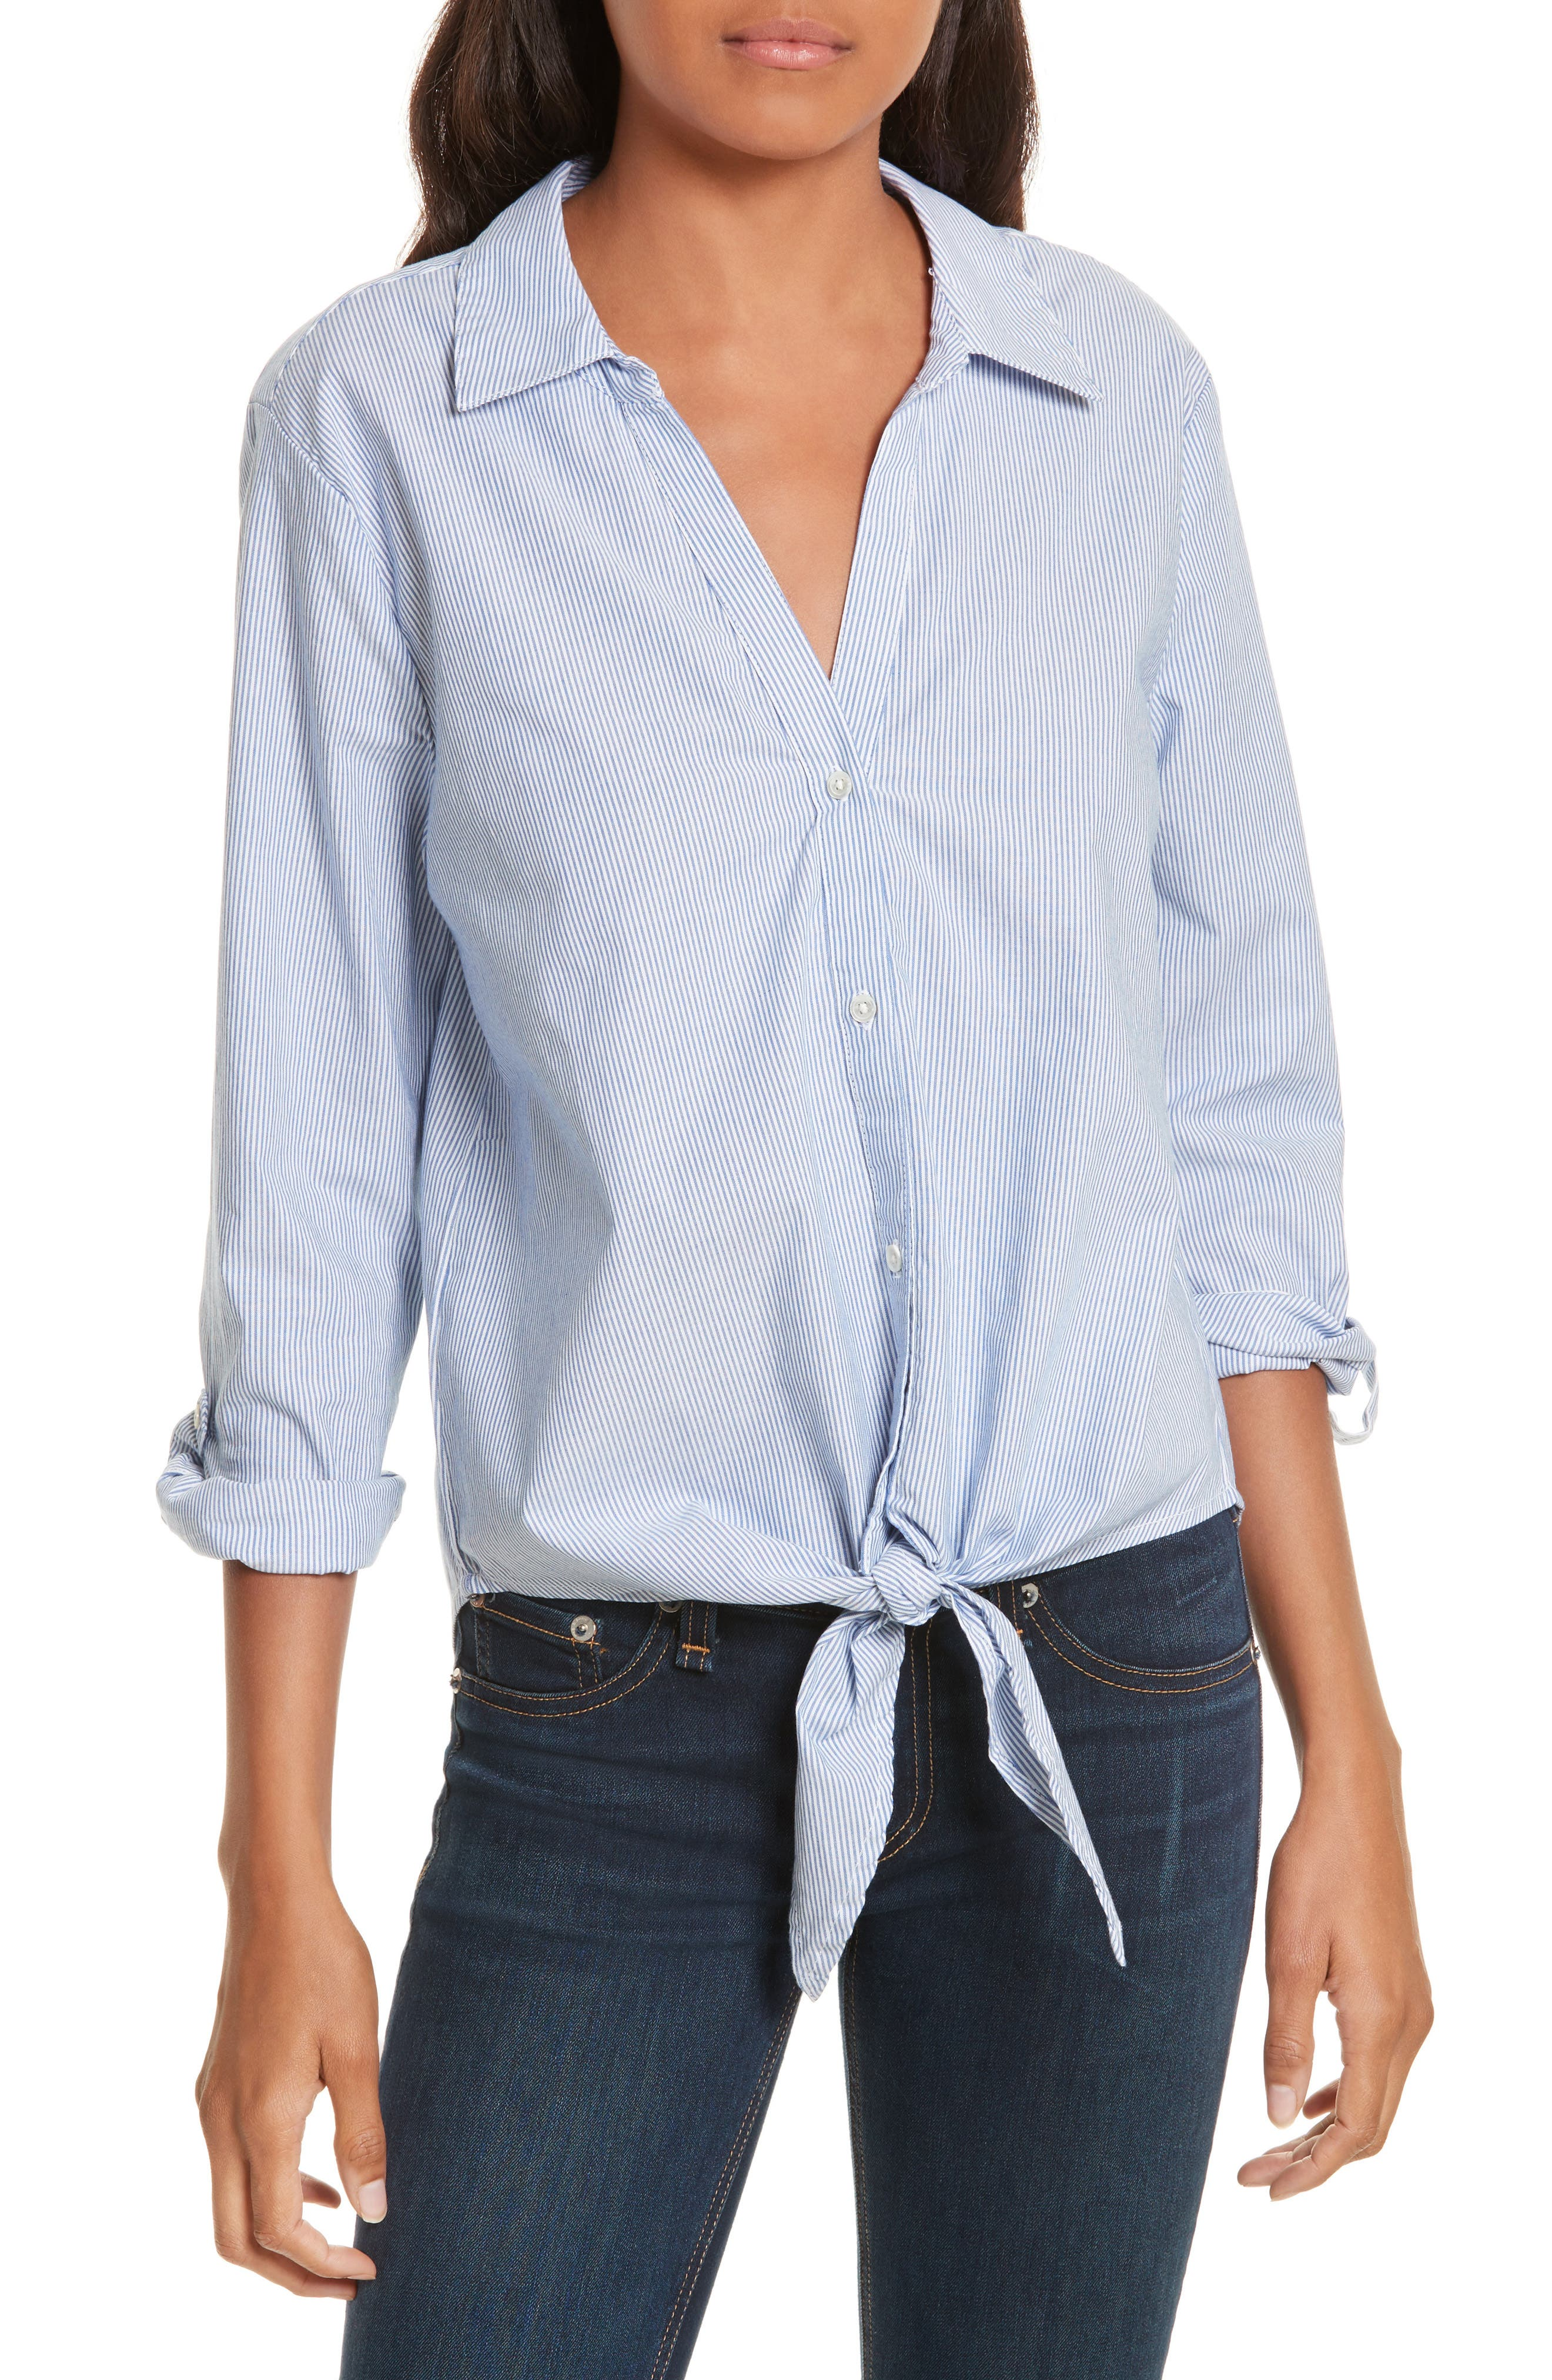 Alternate Image 1 Selected - Soft Joie Crysta Tie Front Shirt